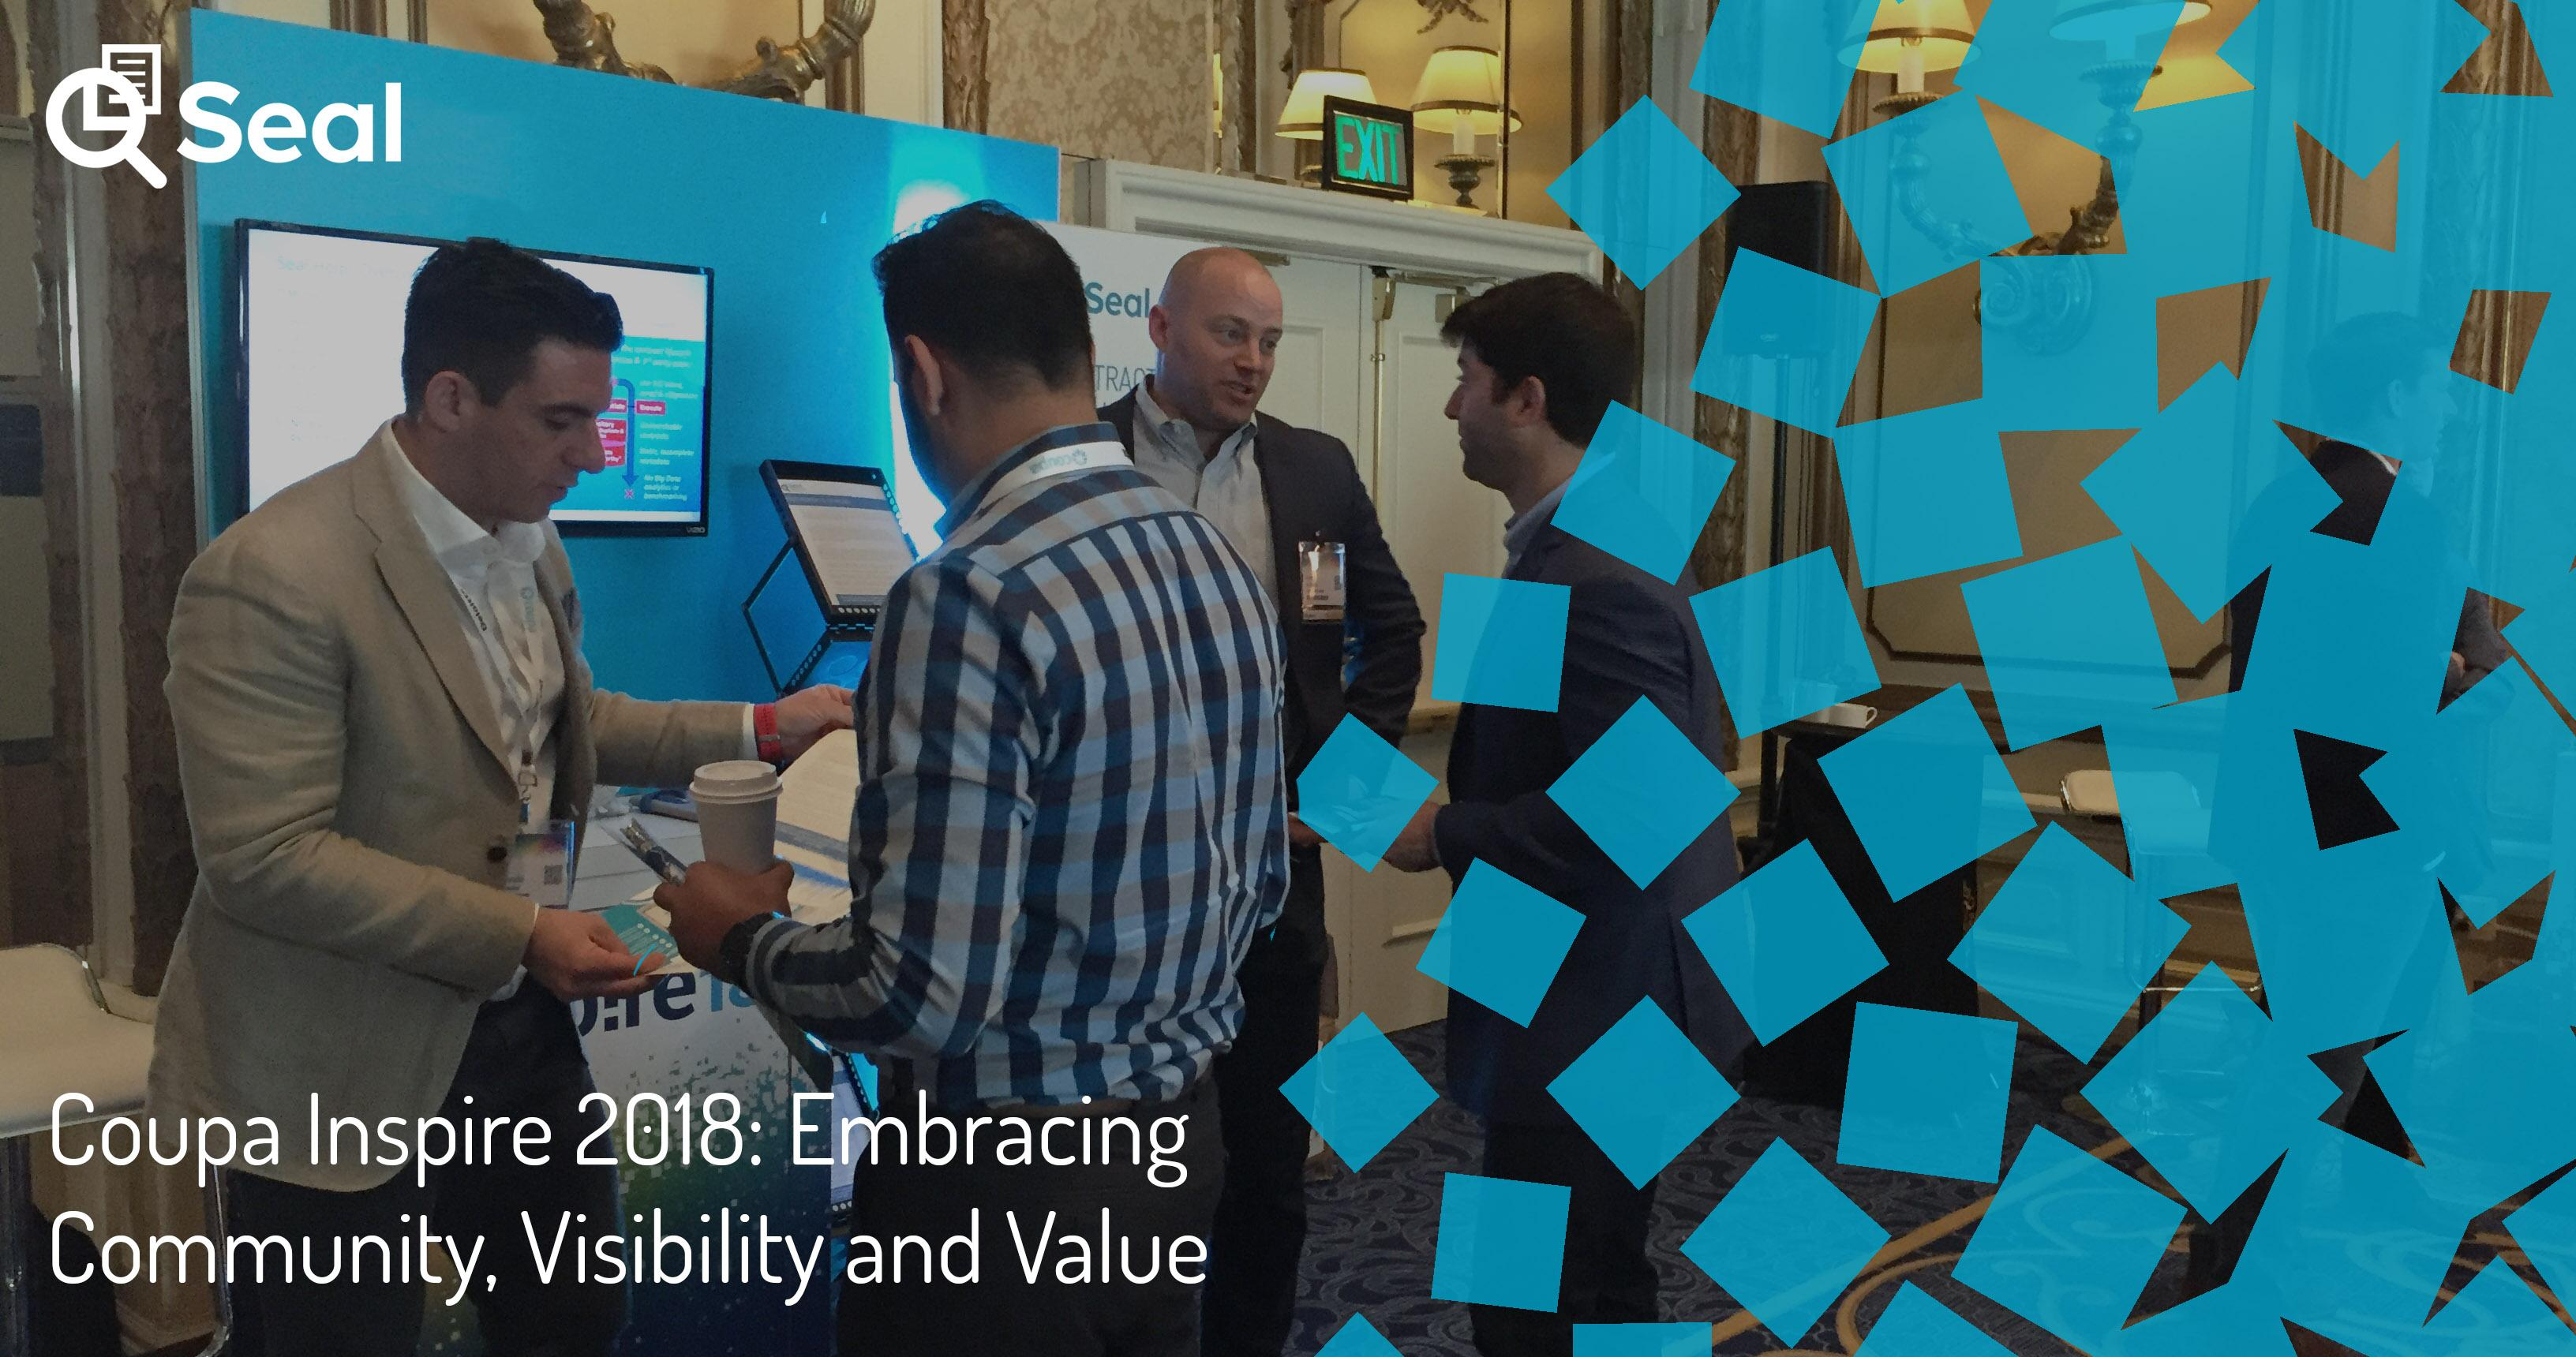 Coupa Inspire 2018: Embracing Community, Visibility and Value